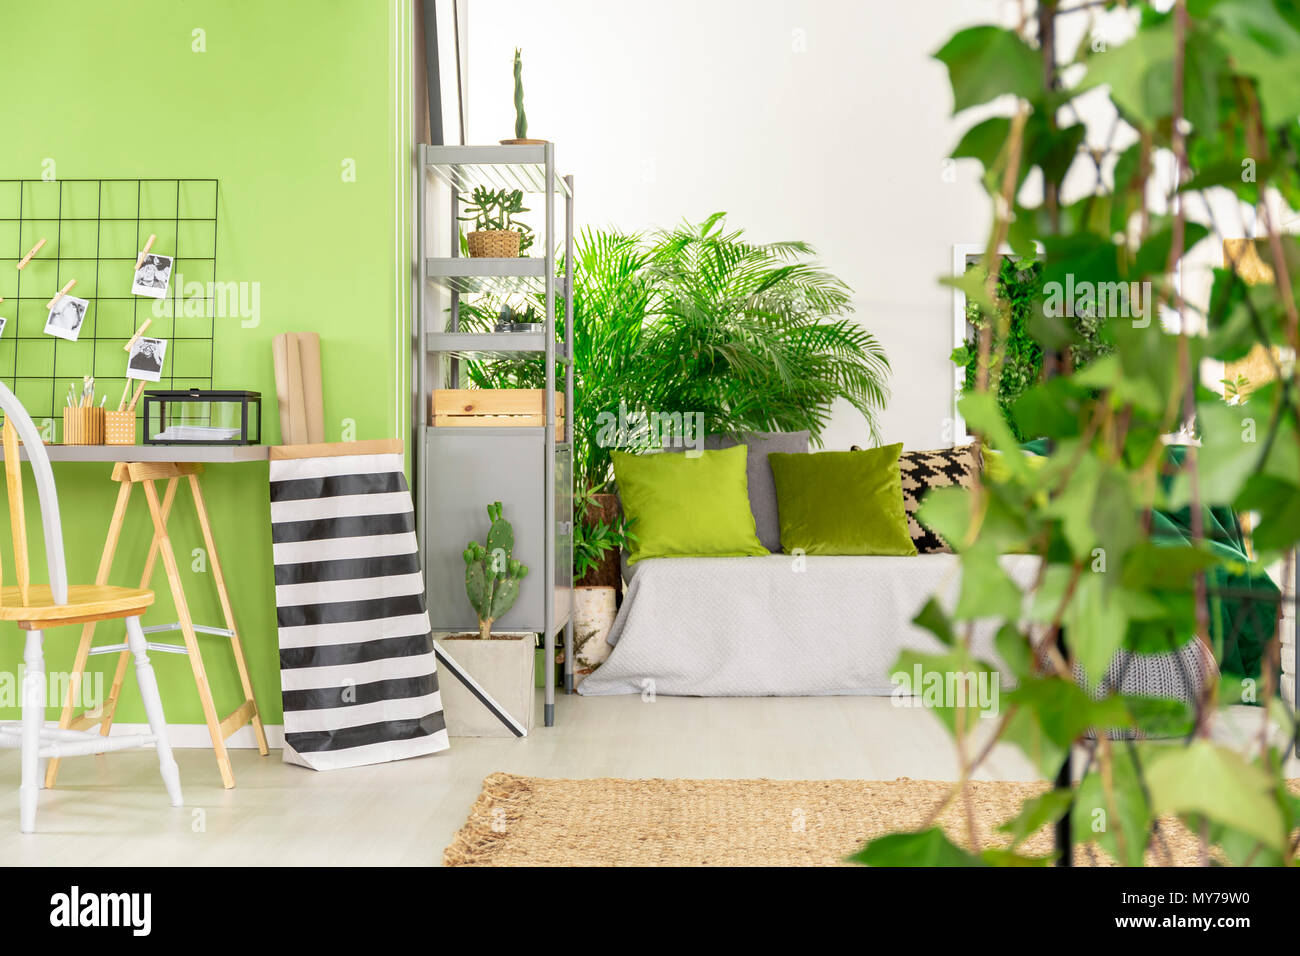 Striped bag next to desk and chair in green open space interior with pillows on bed. Real photo - Stock Image